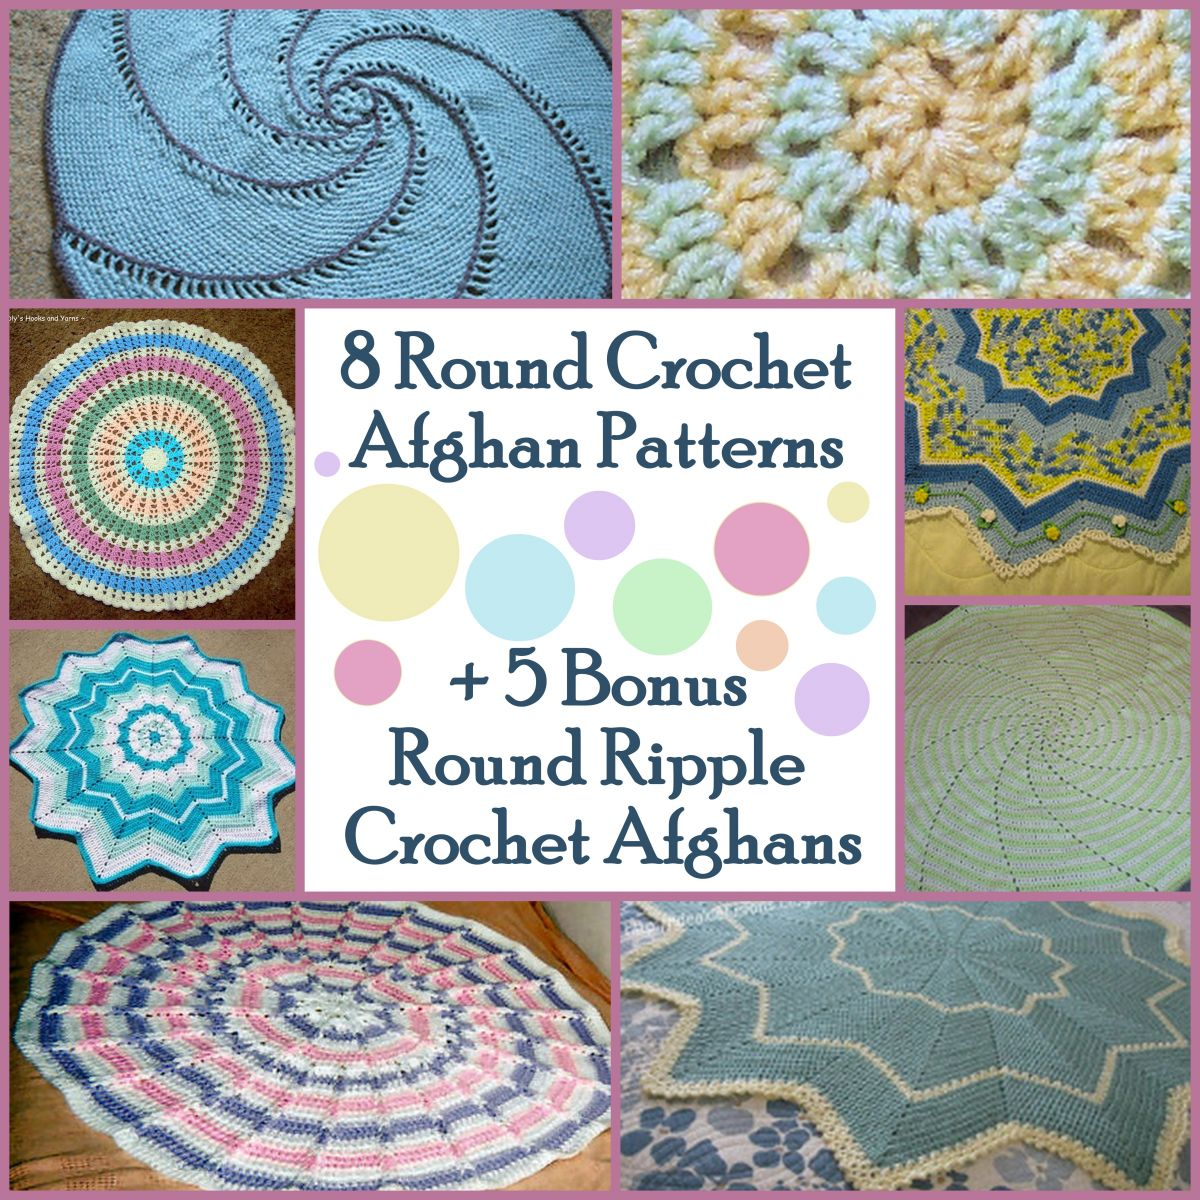 8 Round Crochet Afghan Patterns + 5 Bonus Round Ripple Crochet Afghans